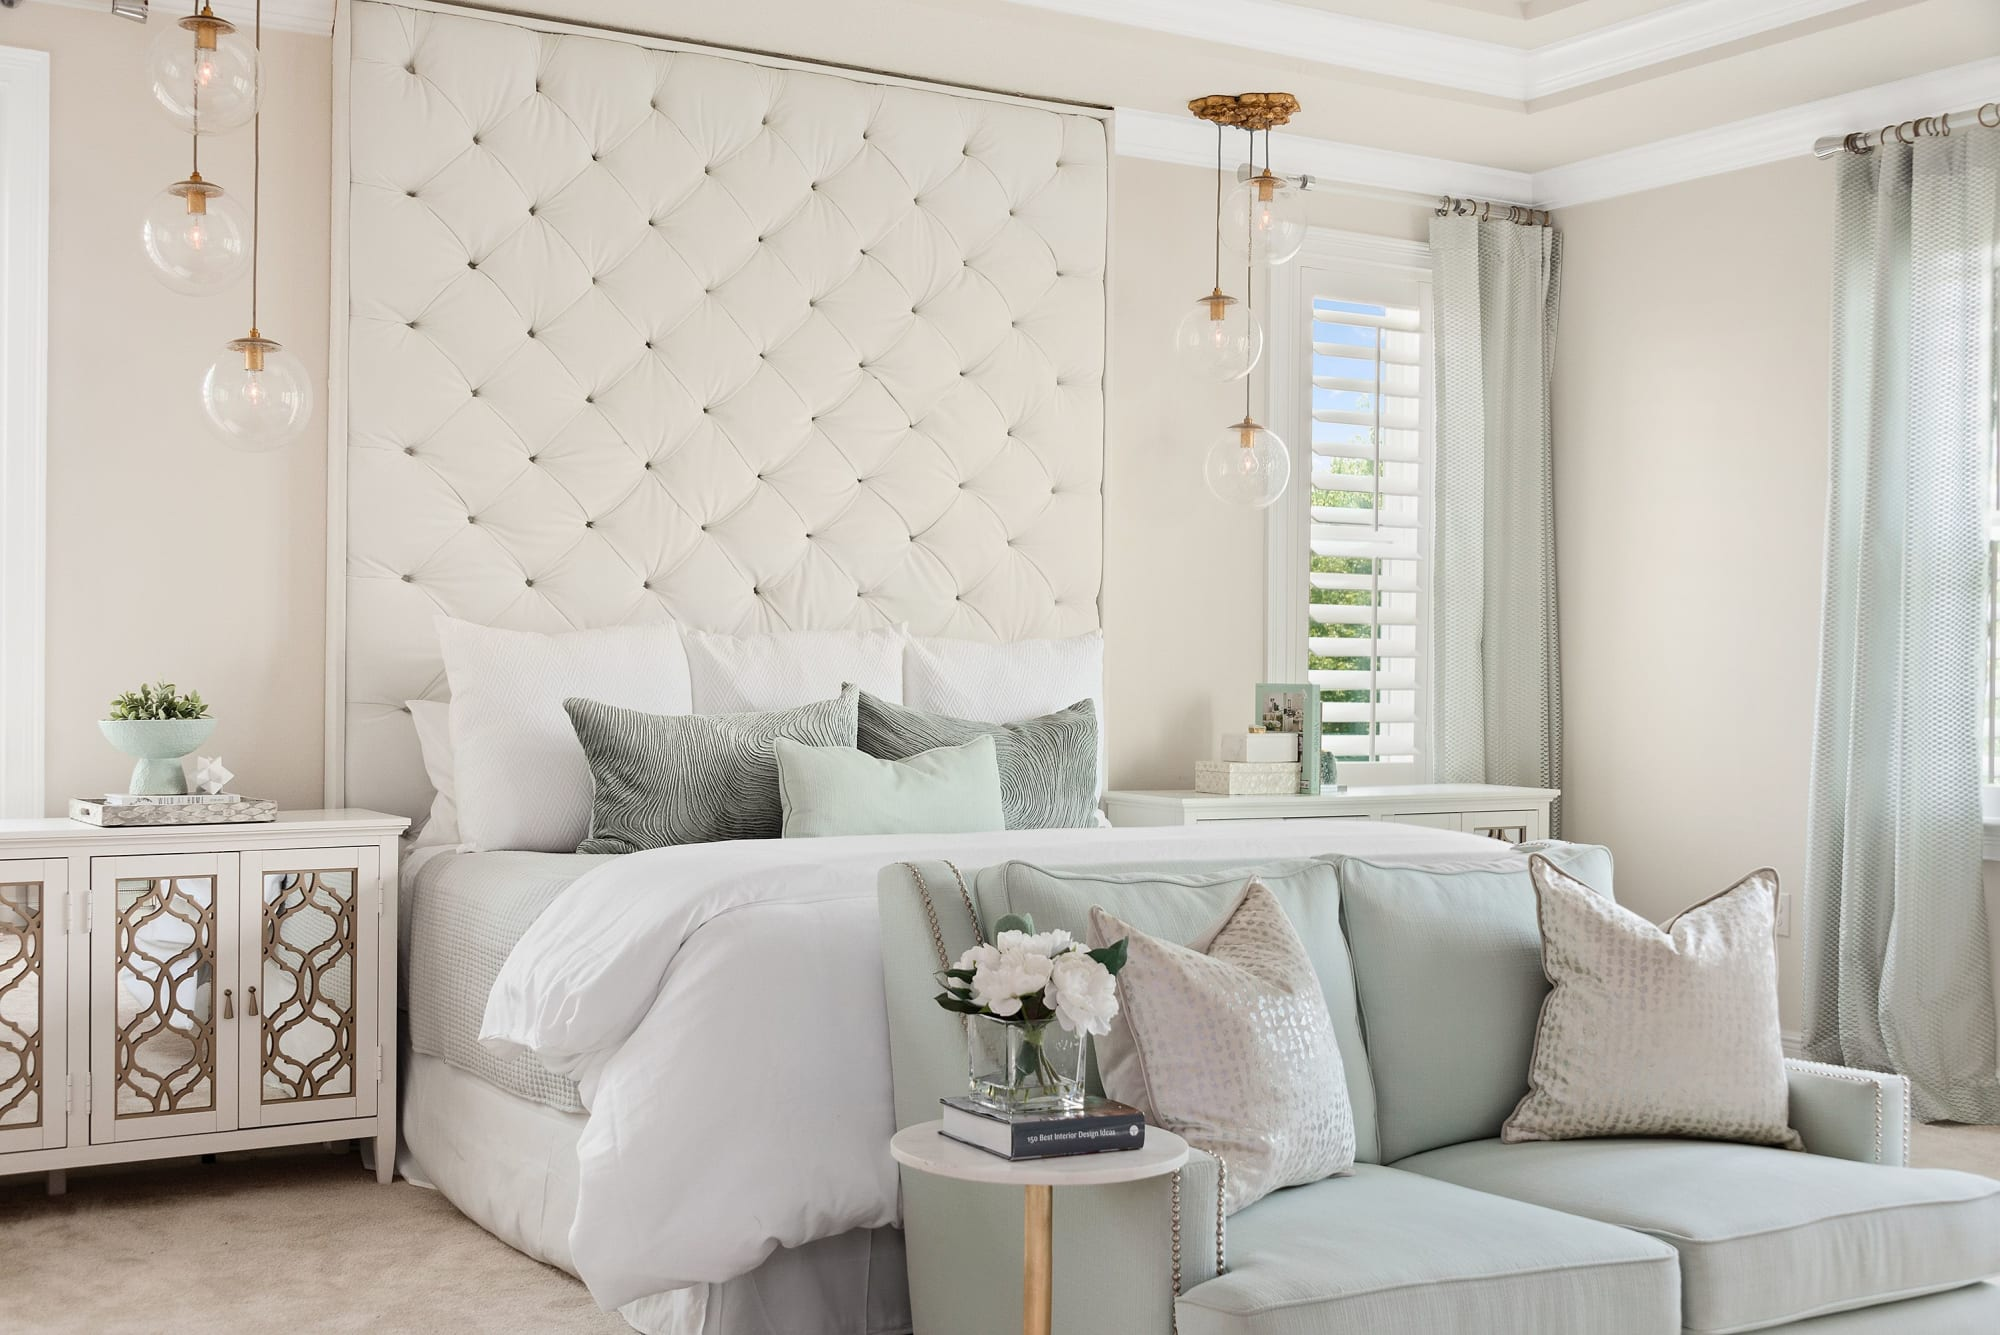 Interior Design by Motivo Home seen at Private Residence, Winter Park - Everyday Glam